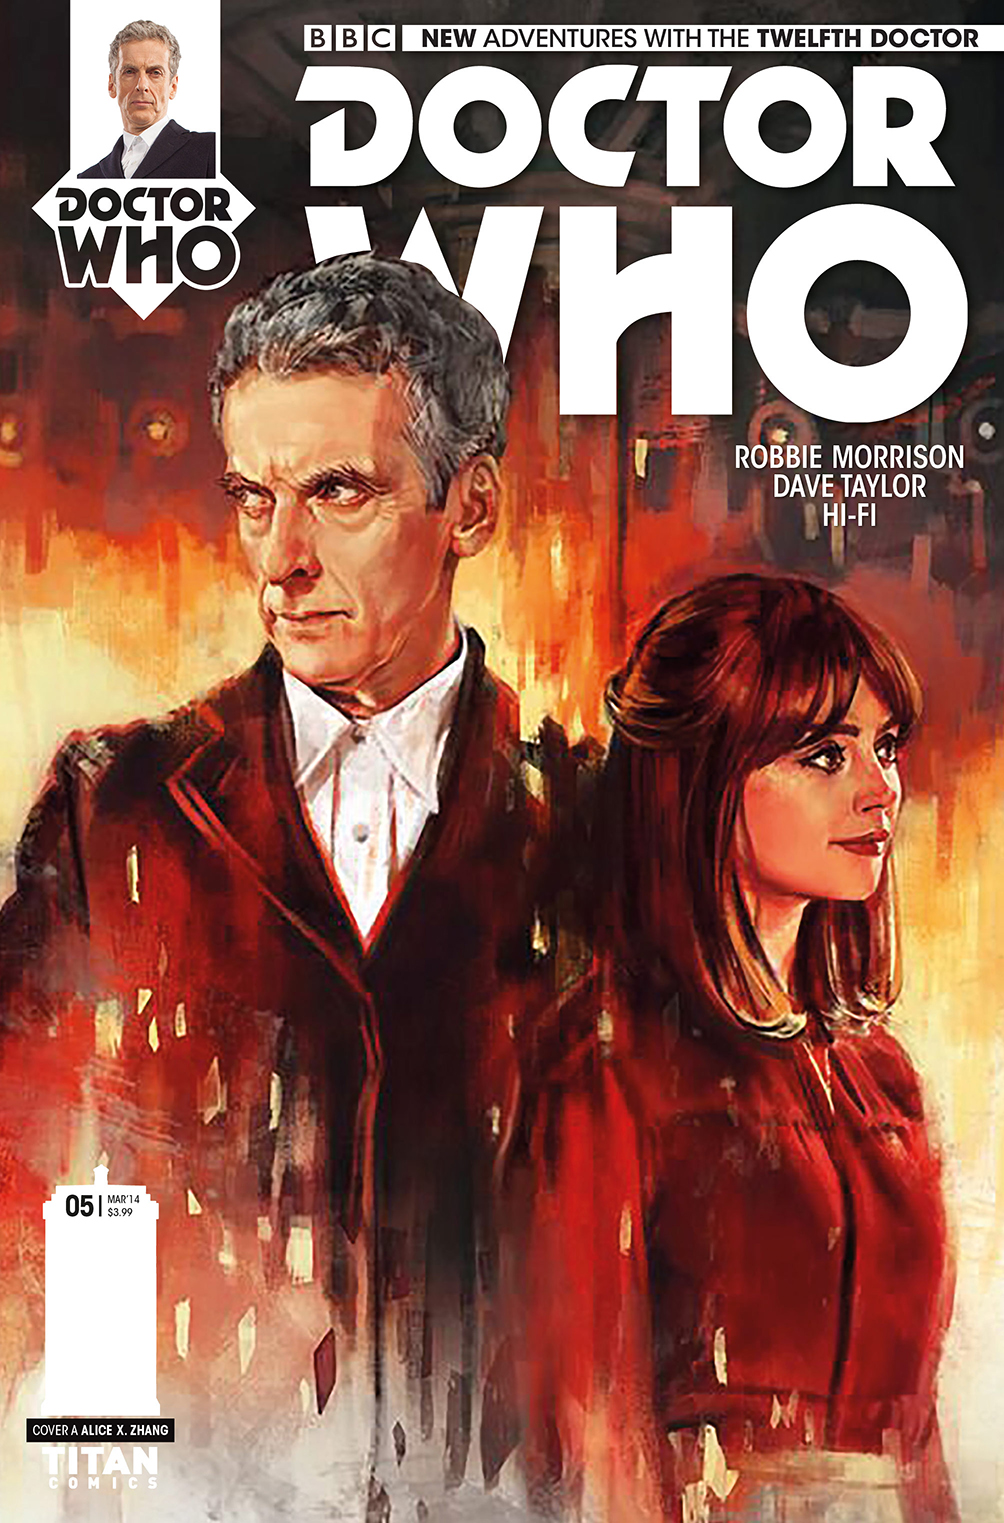 Art Preview Doctor Who The Twelfth Doctor Issue 5 By Robbie